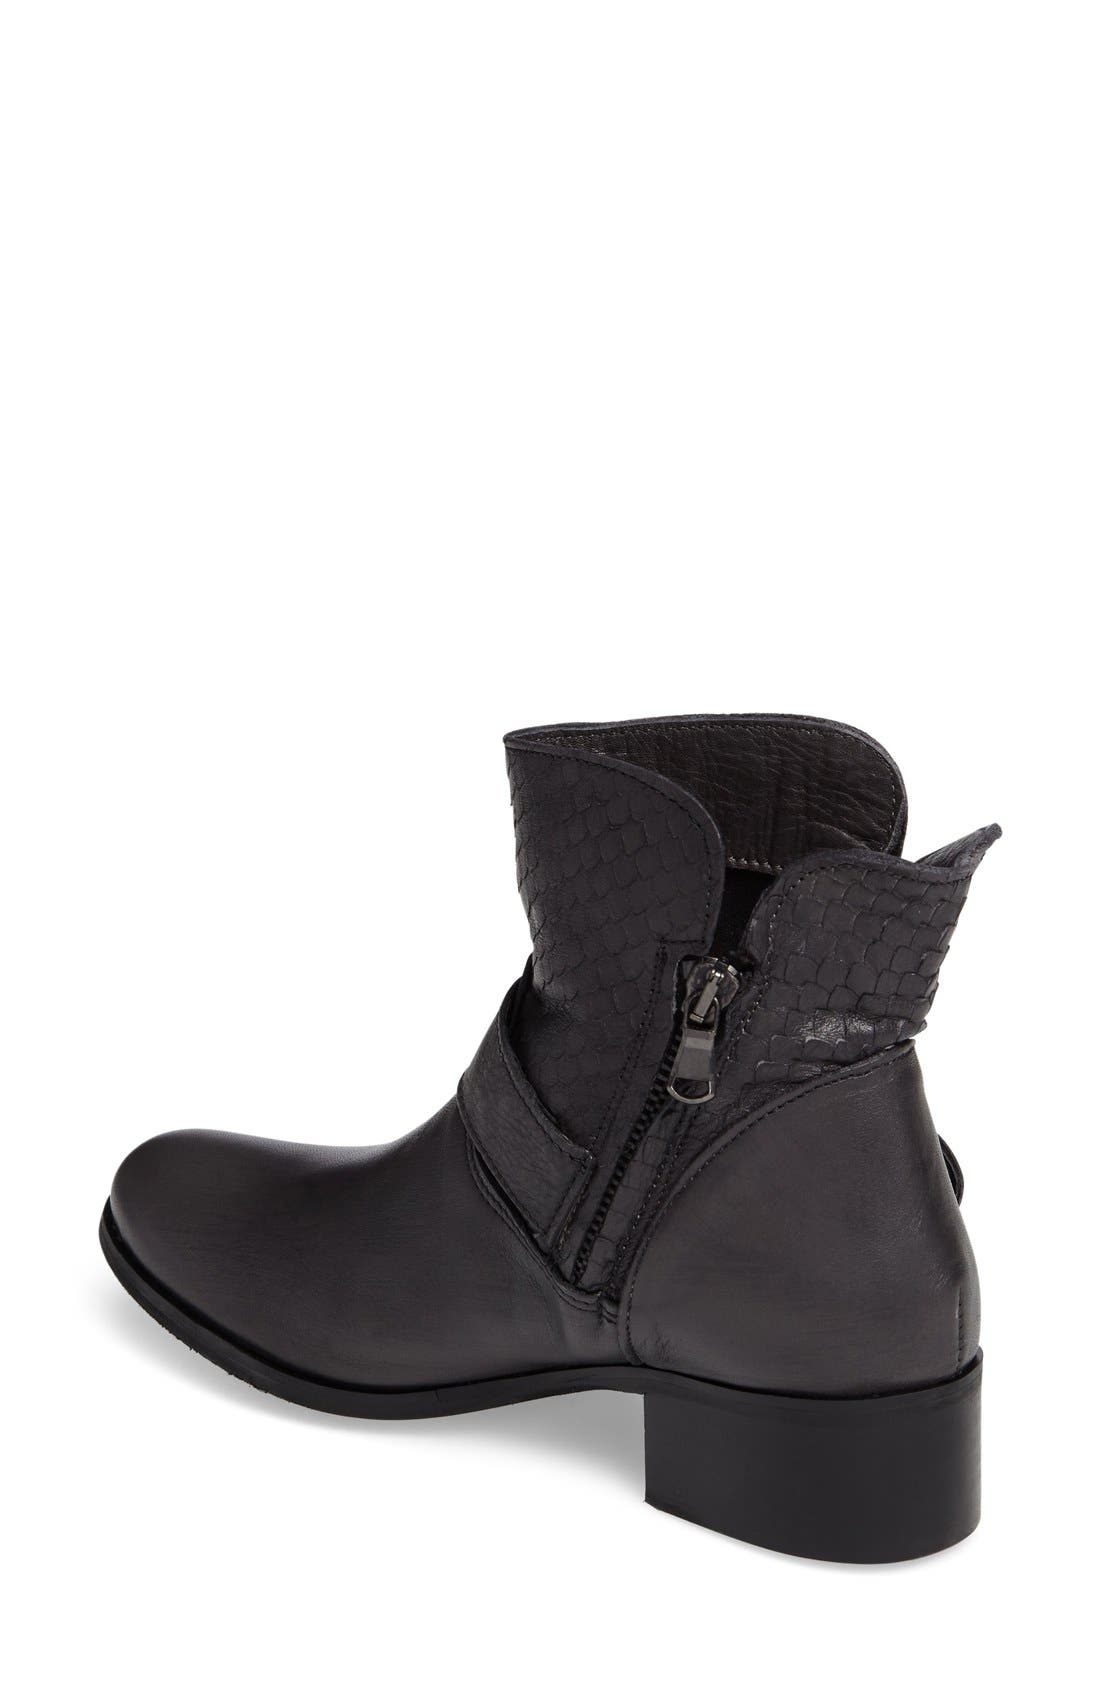 Alternate Image 2  - CrossTown Chiara 22 Textured Buckle Strap Bootie (Women)